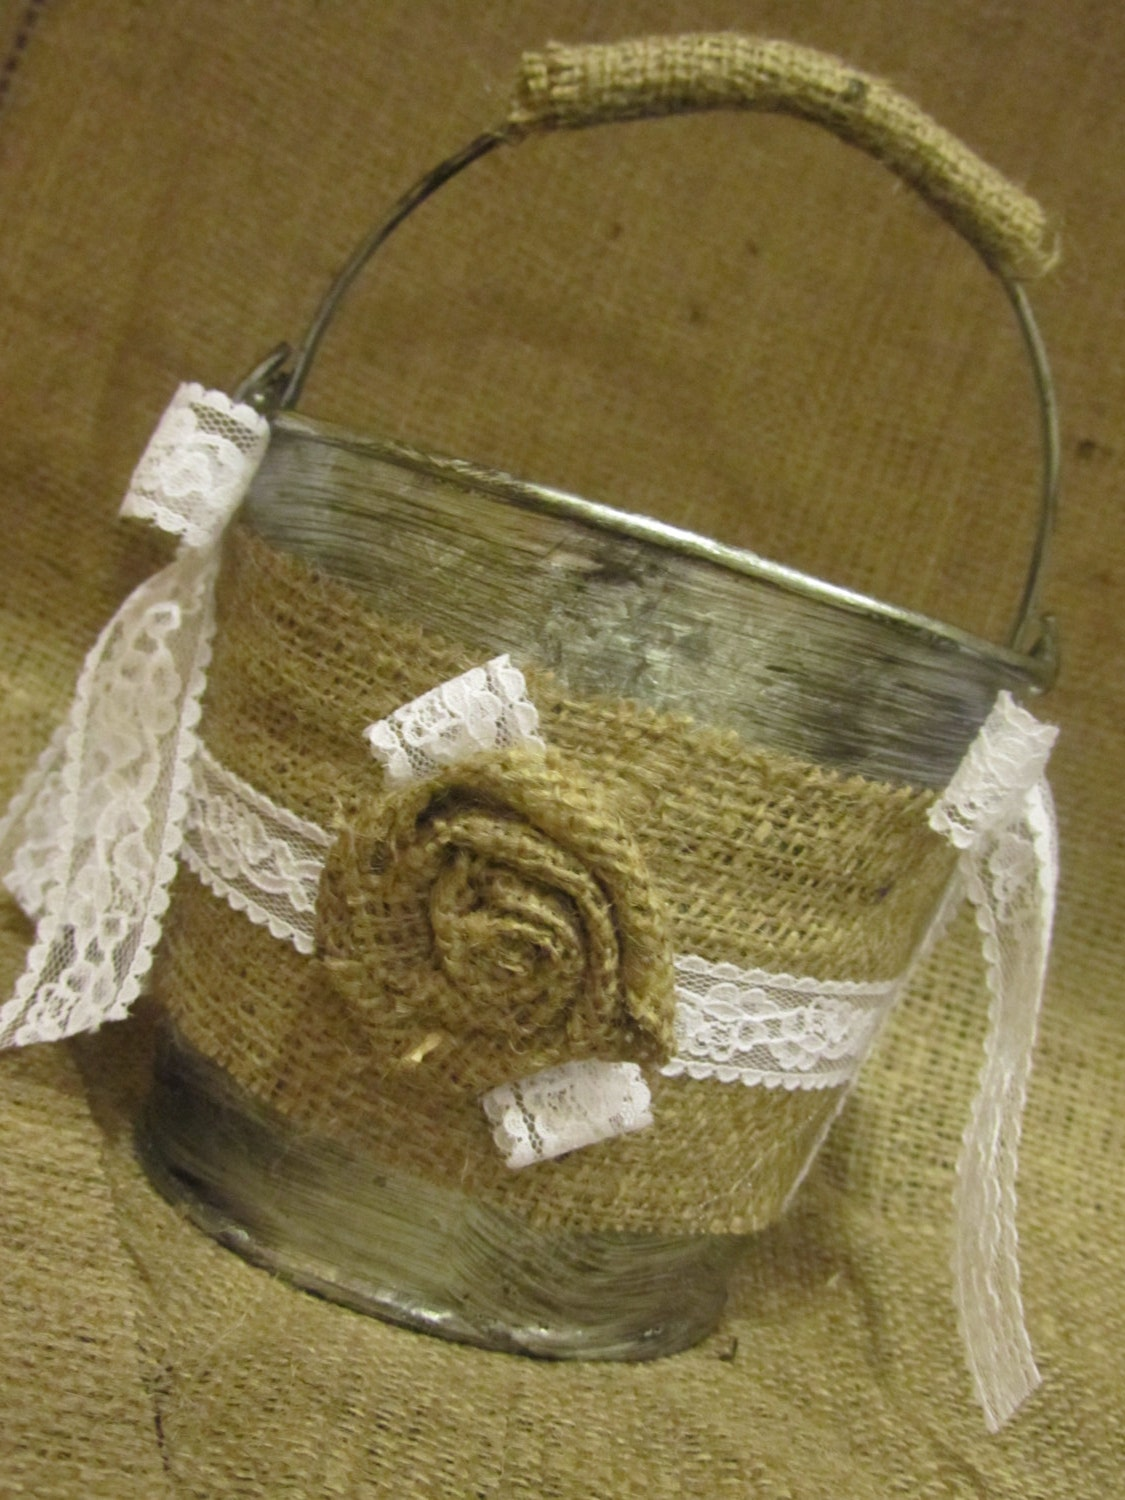 Flower Girl Baskets Burlap And Lace : Etsy your place to buy and sell all things handmade